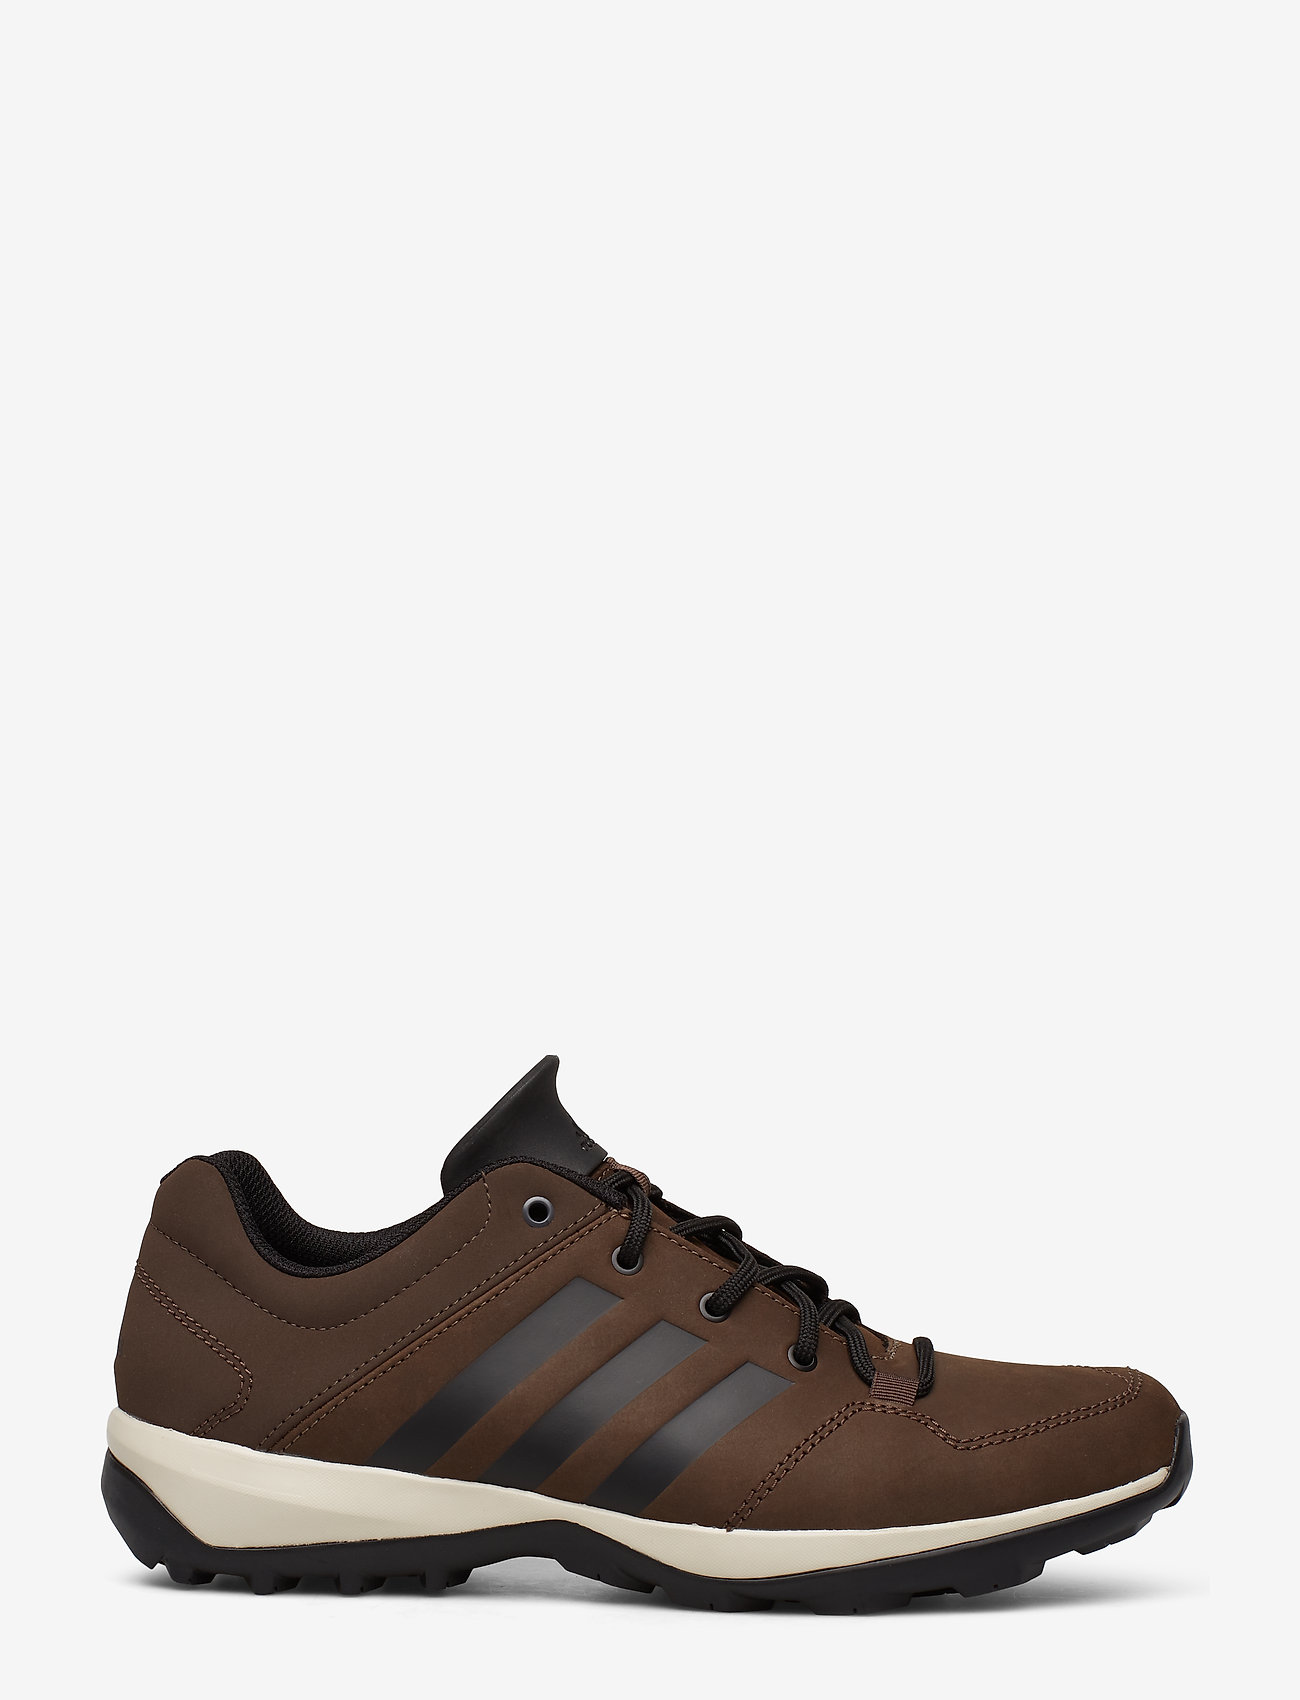 Daroga Plus Lea (Brown/cblack/sbrown) - adidas Performance YHYi99